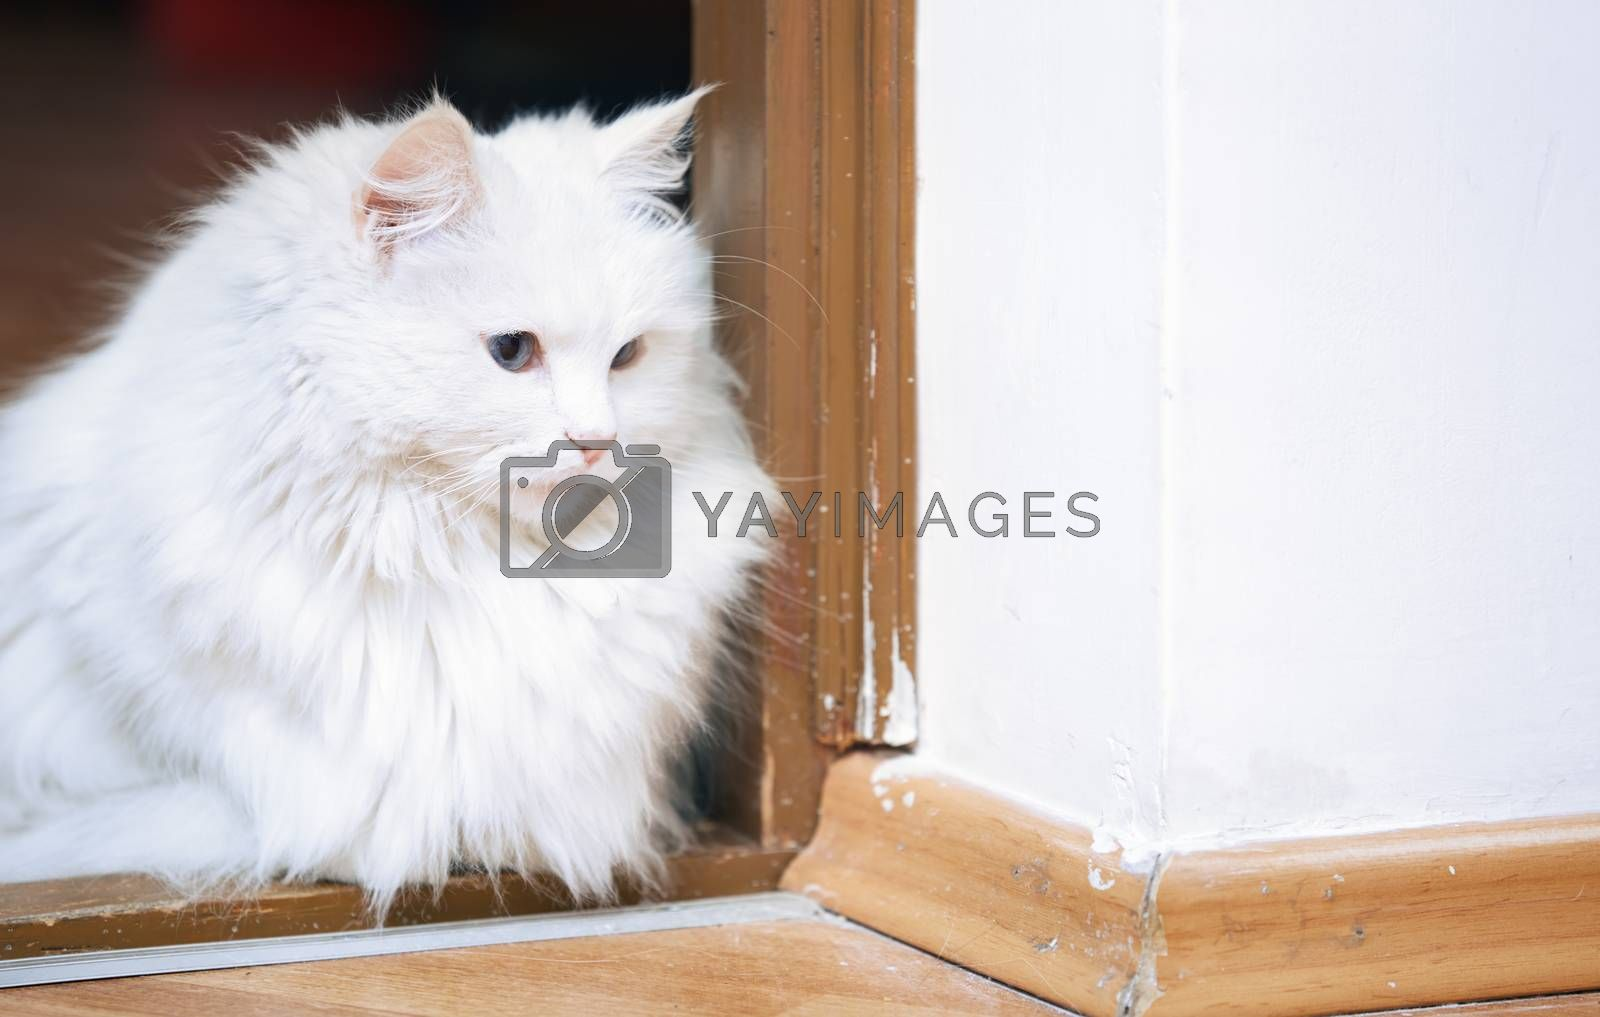 Fluffy white cat sitting on a floor